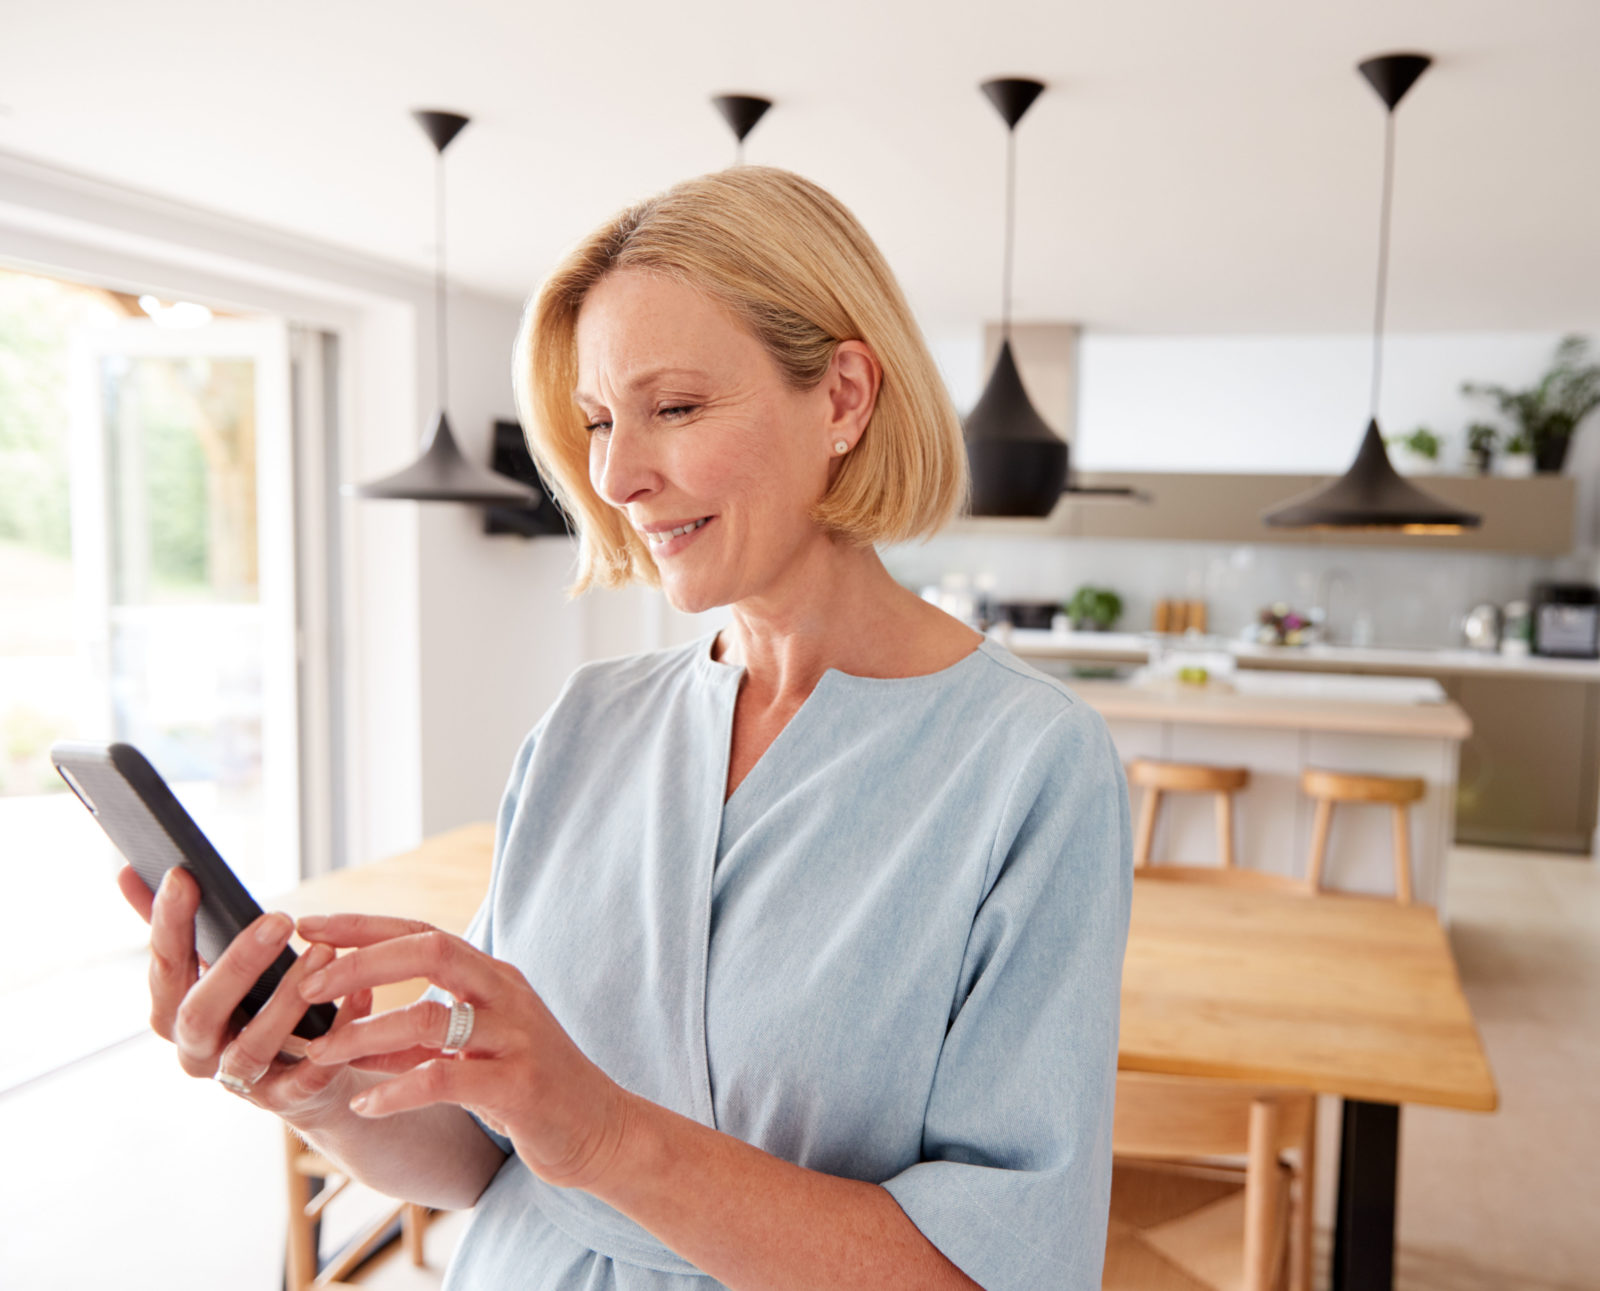 Mature,Woman,Using,App,On,Mobile,Phone,To,Control Temperature In House